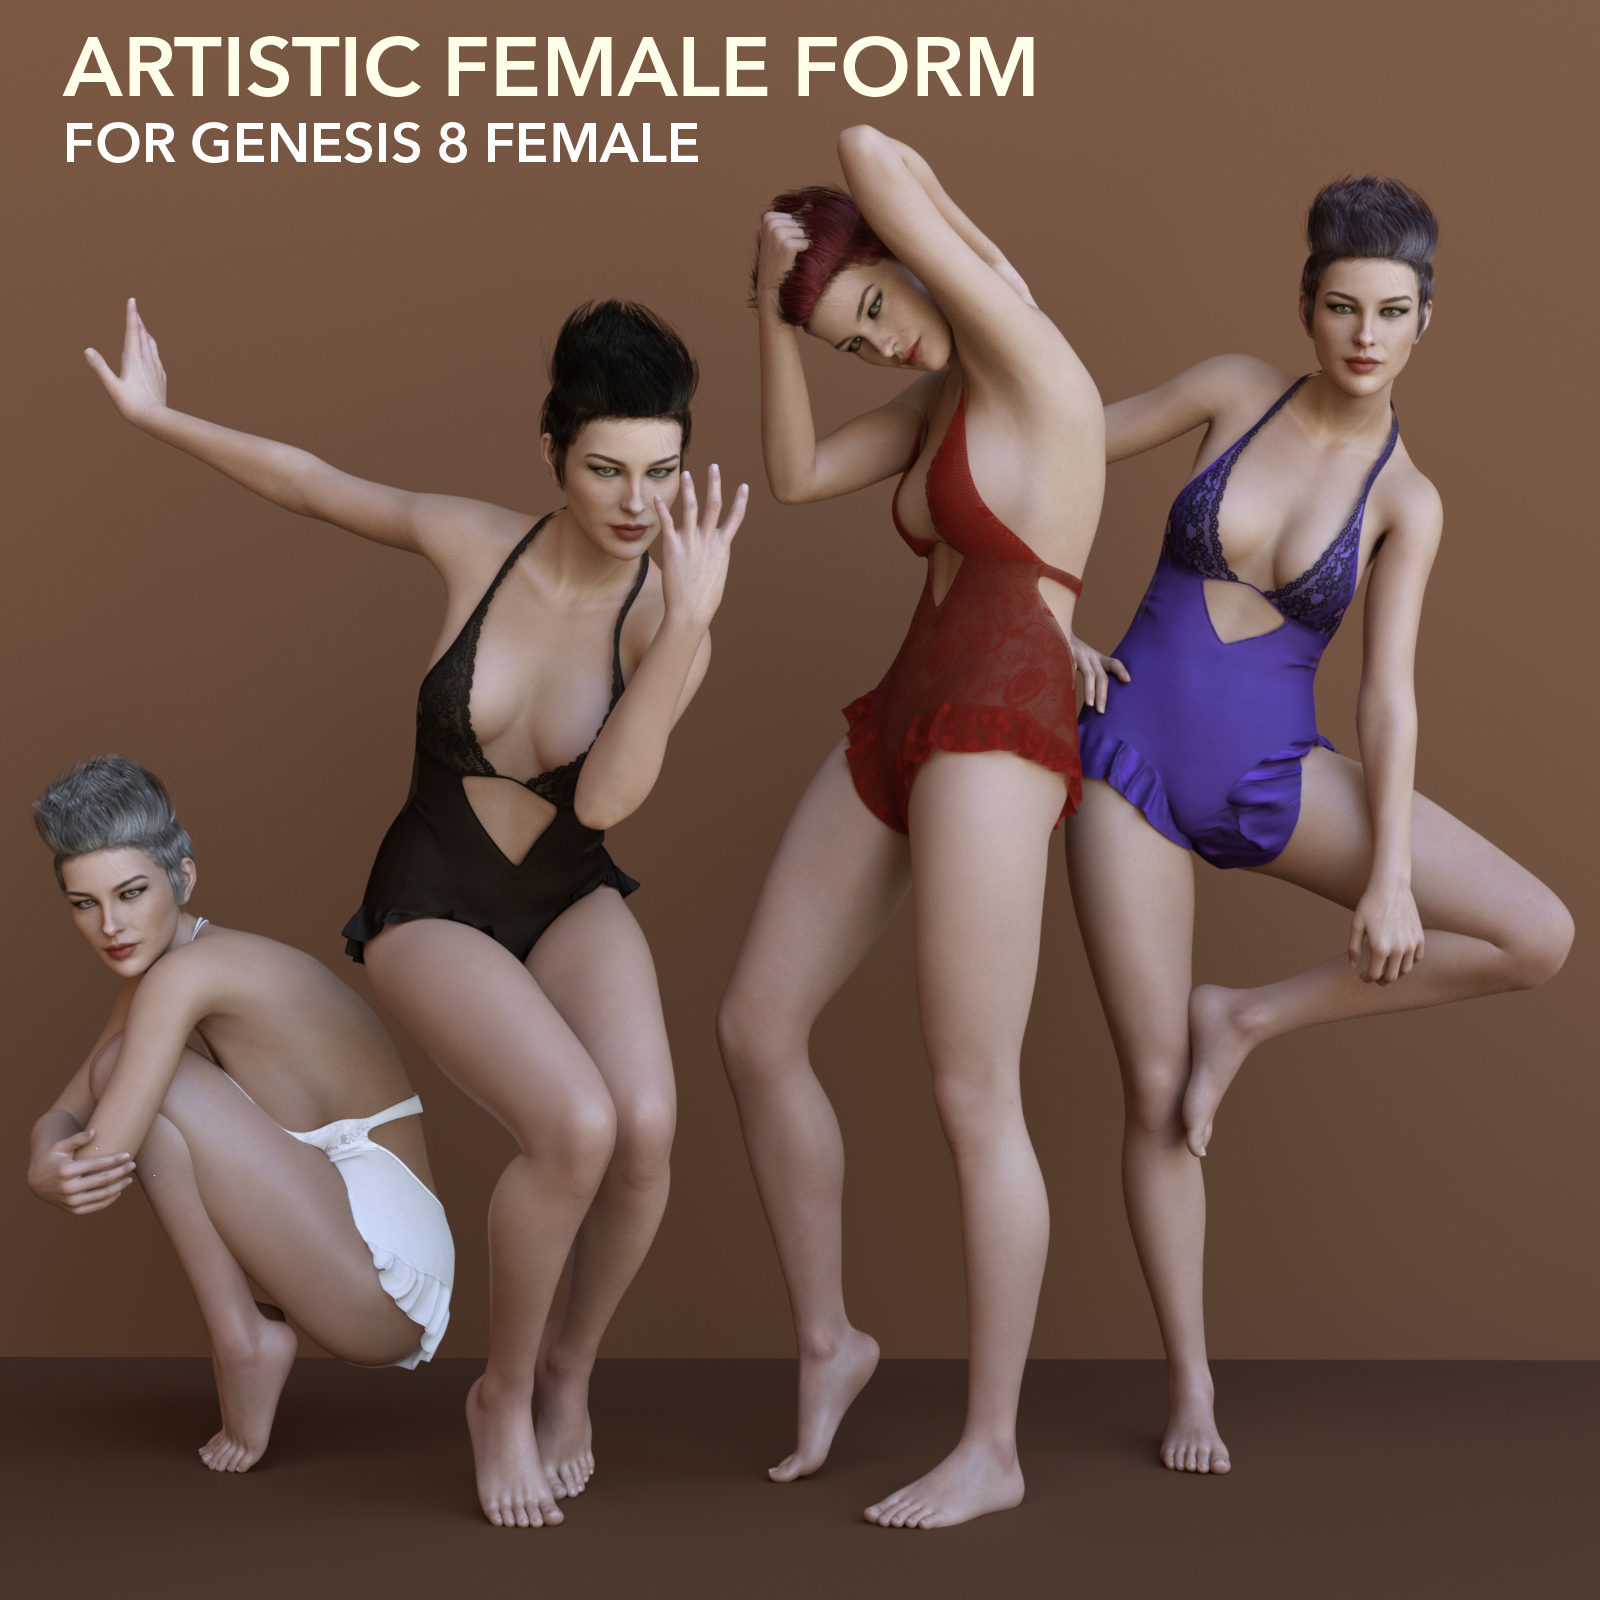 Artistic Female Form for Genesis 8 Female